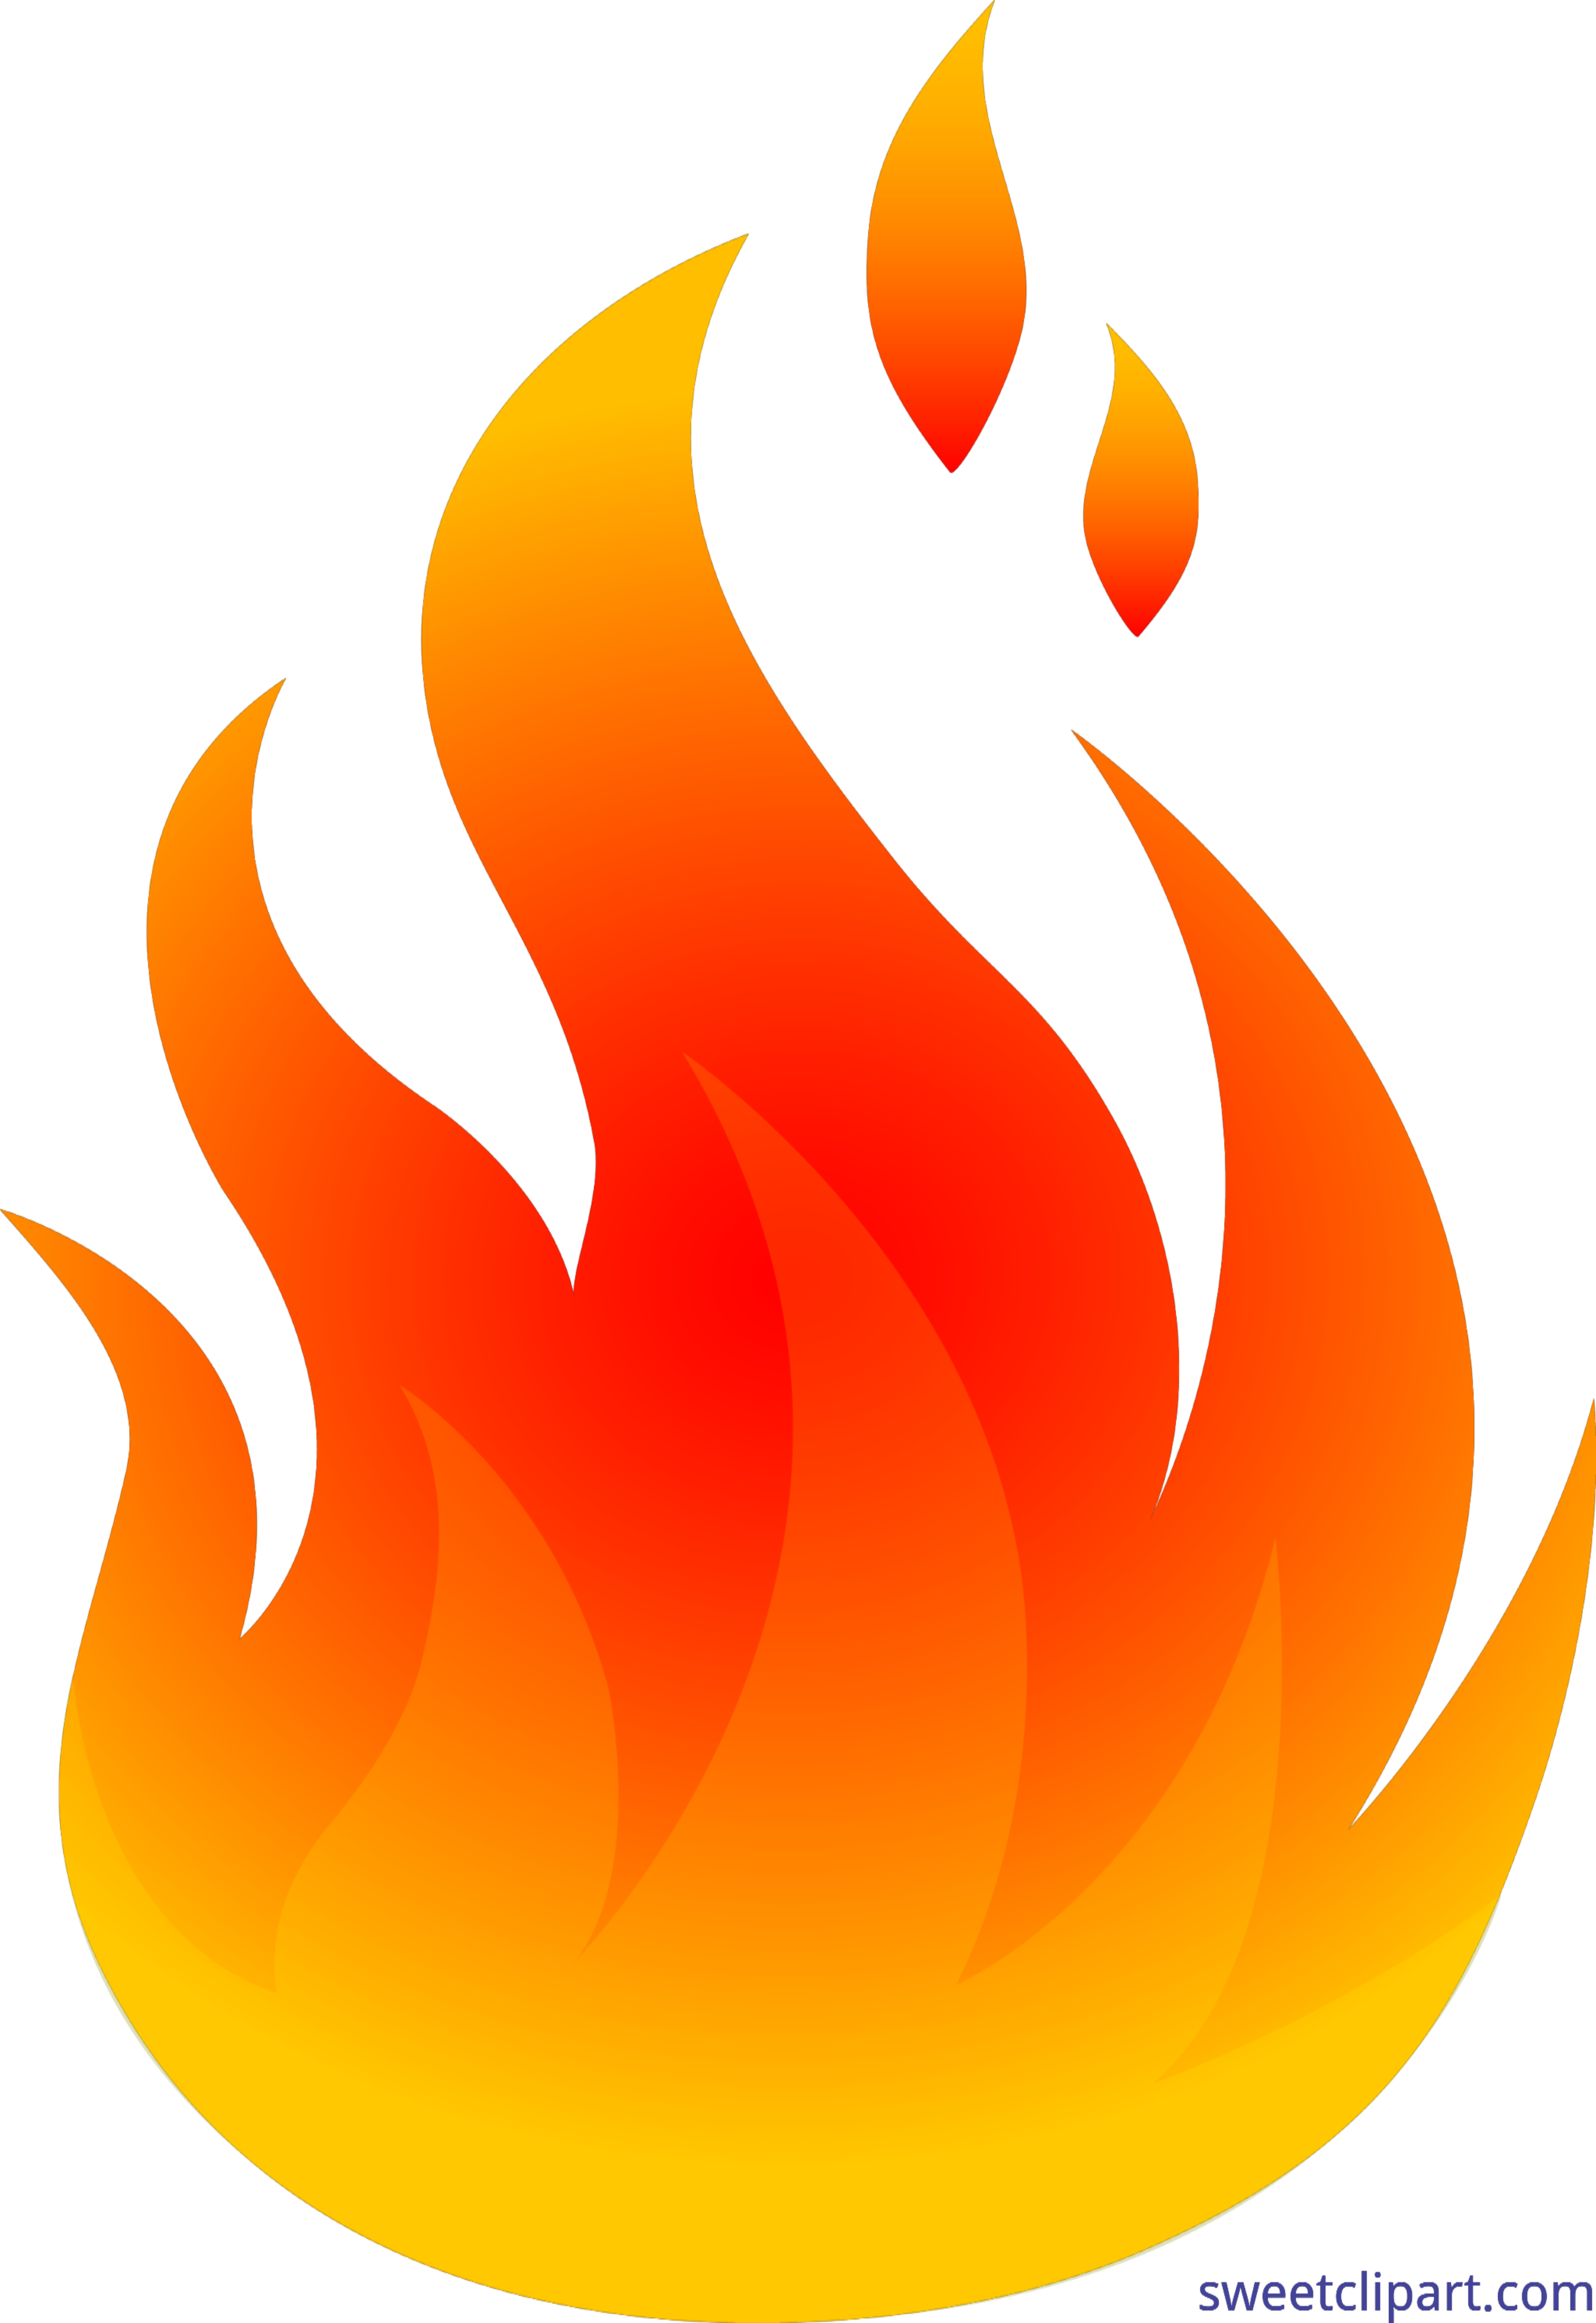 Fire logo png. Red and yellow clip